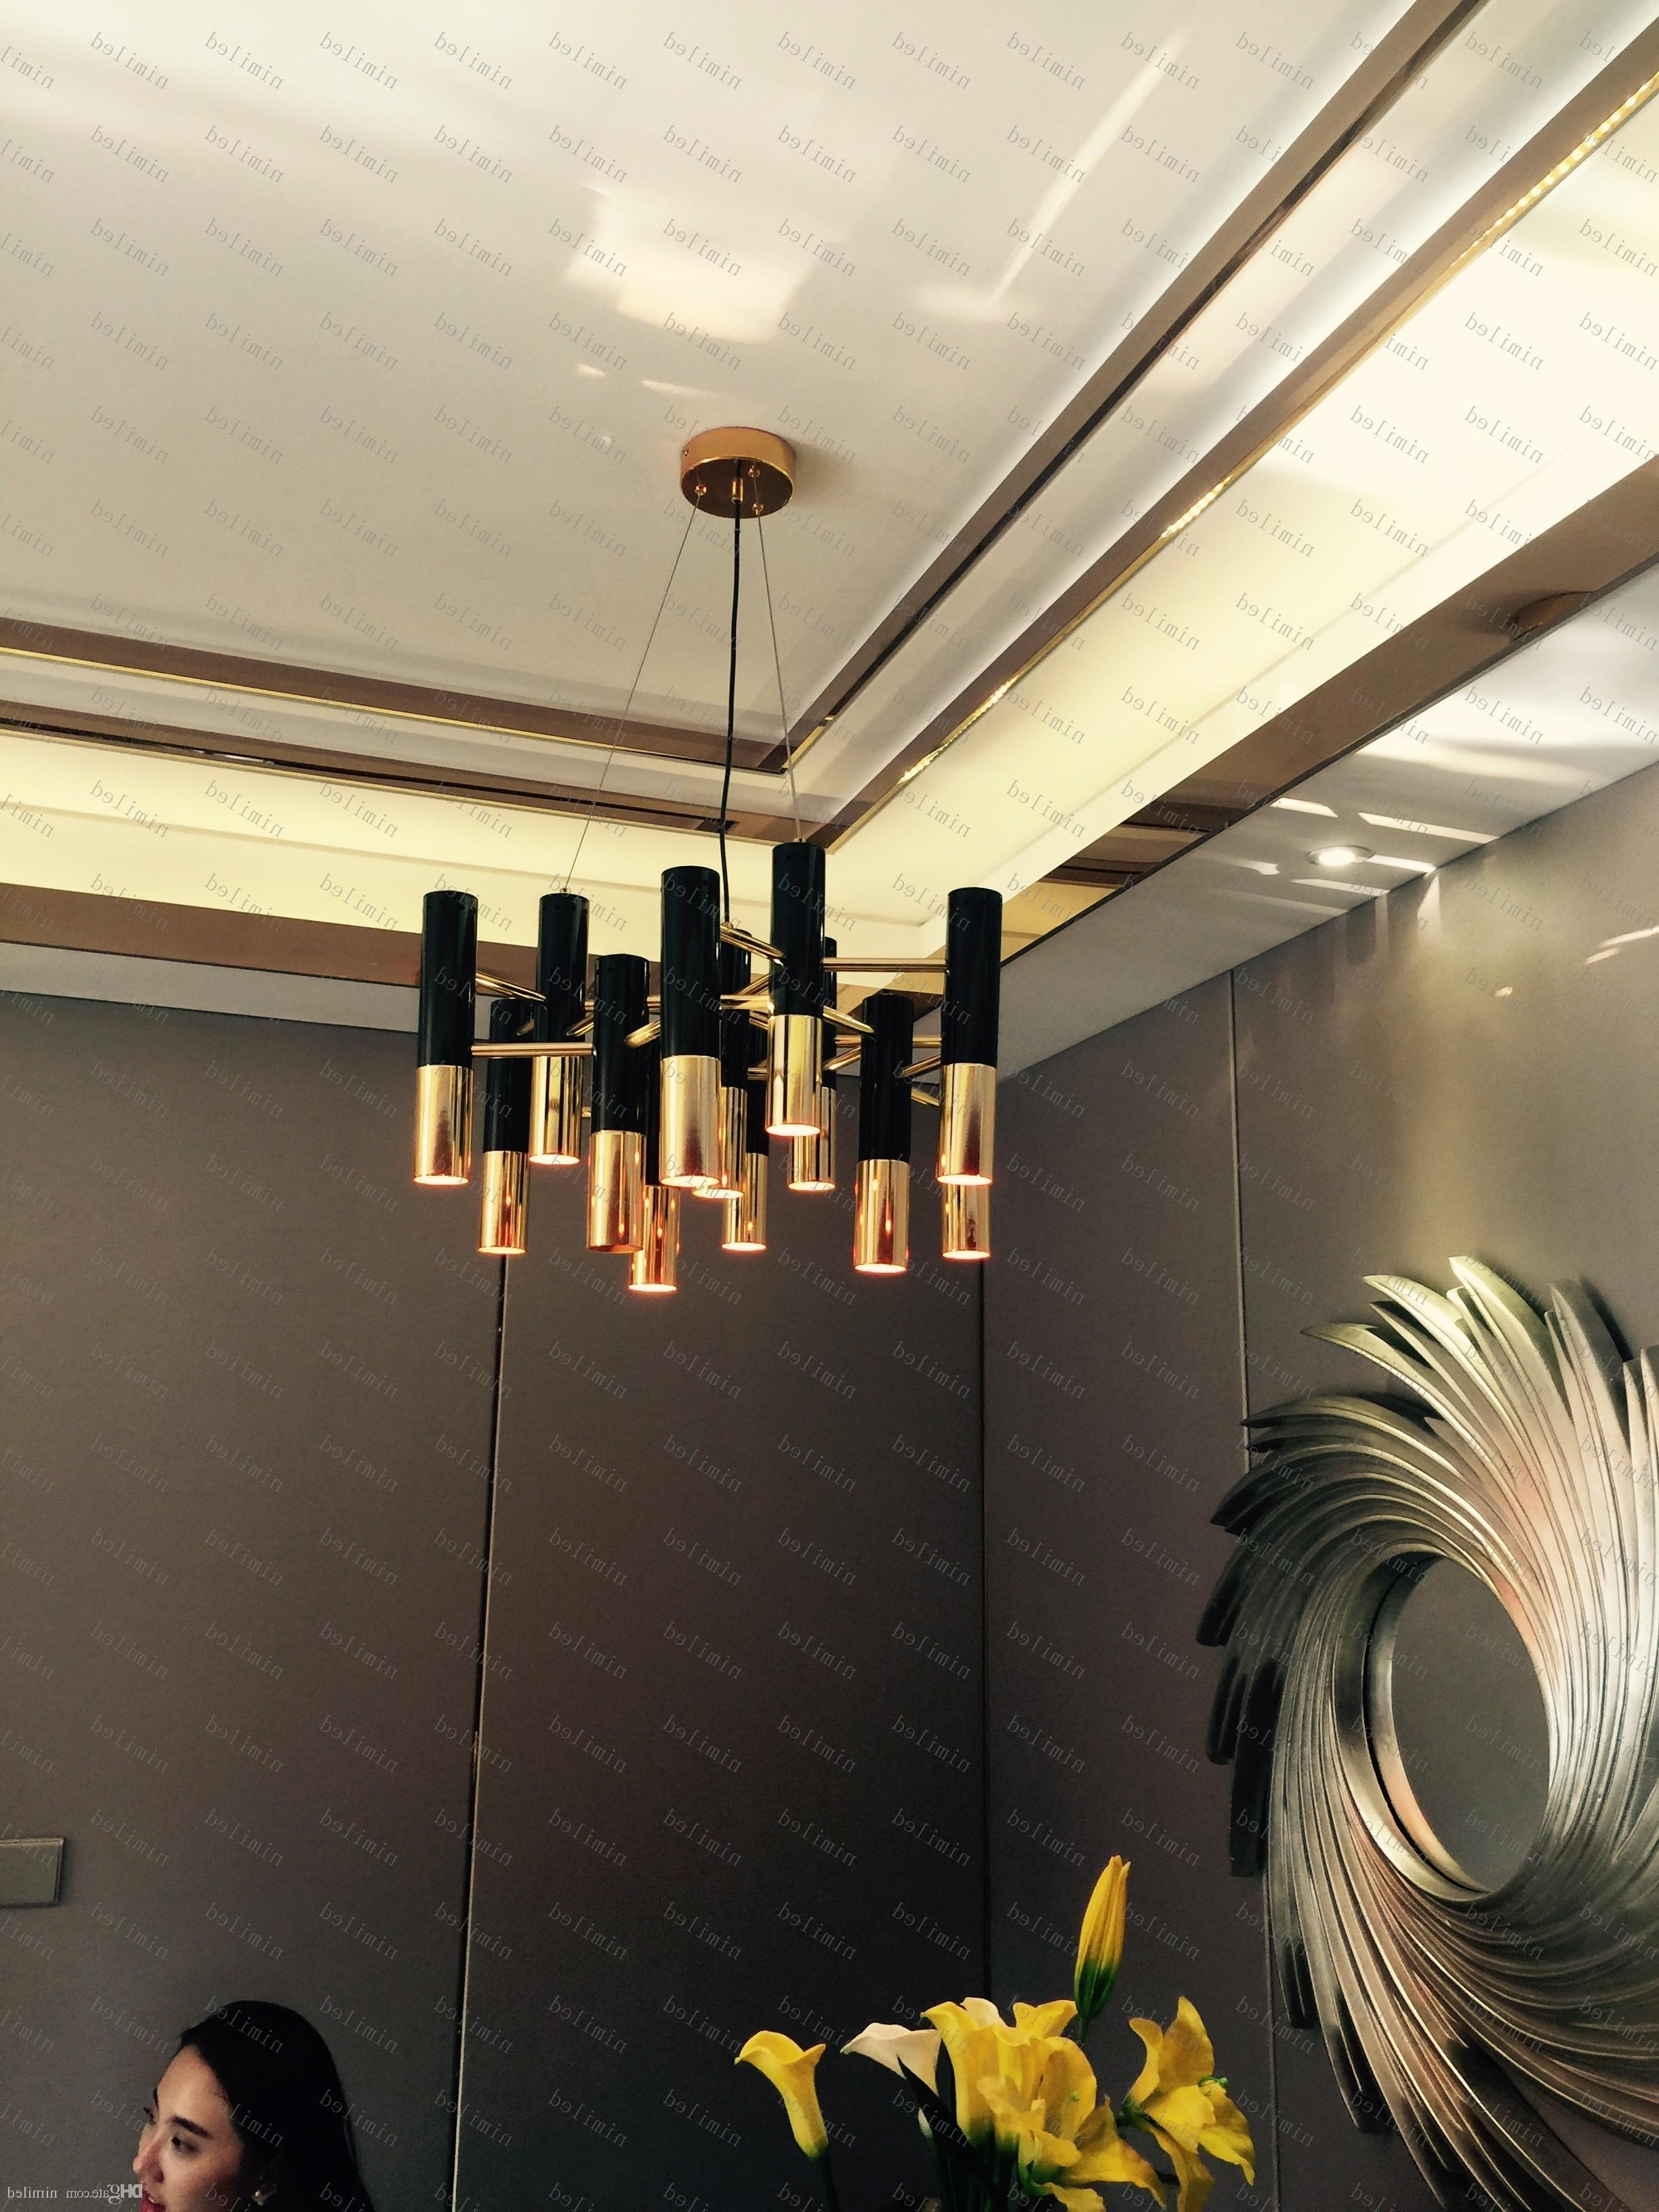 Most Recently Released Nimi774 Modern Design Delightfull Ike Chandelier Pendant Lamp Pertaining To Chandelier Lights For Living Room (View 12 of 15)